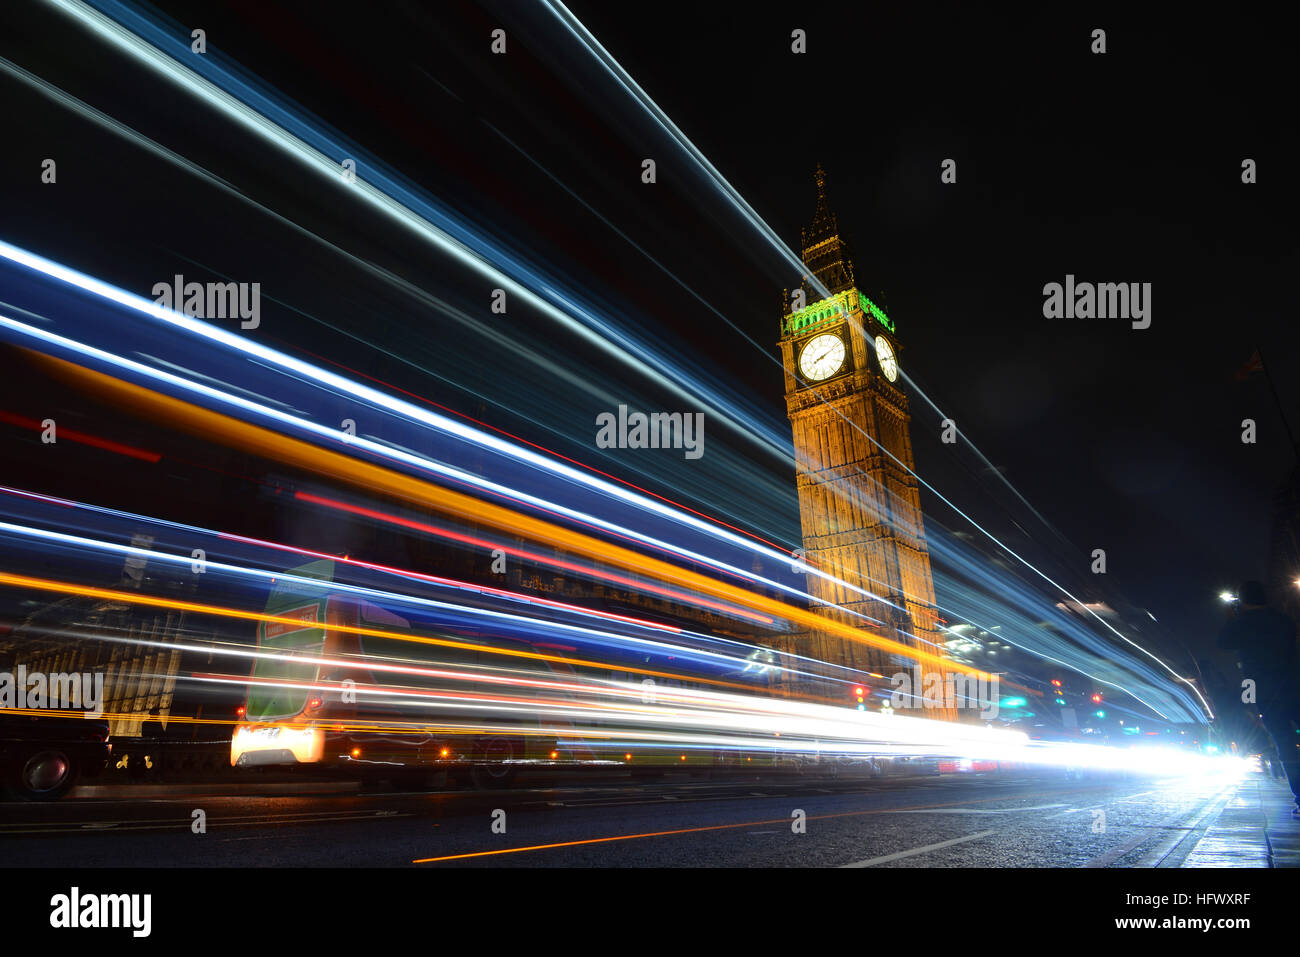 Big Ben tower, Westminster Palace, London, UK, at night with car trails - Stock Image